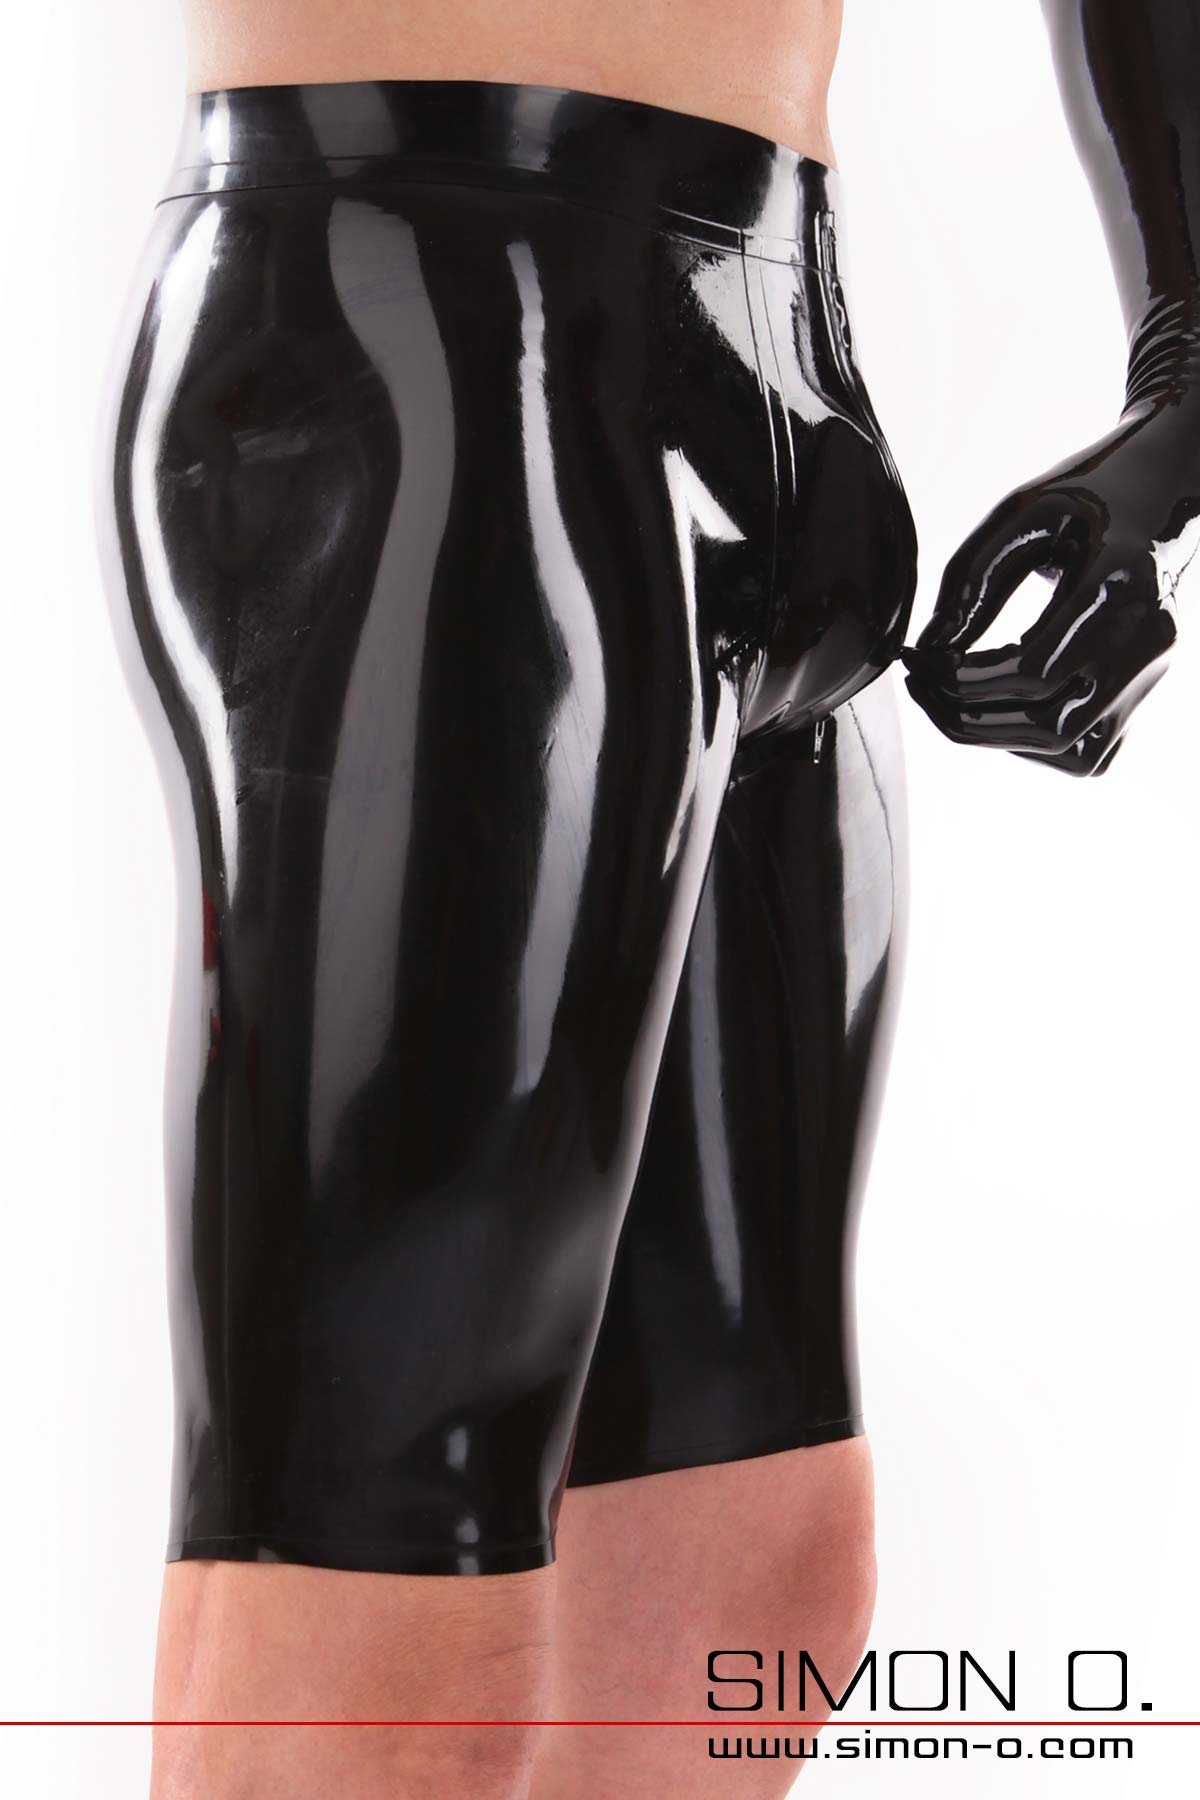 Black latex Bemuda shorts with white waistband and zipper in the crotch